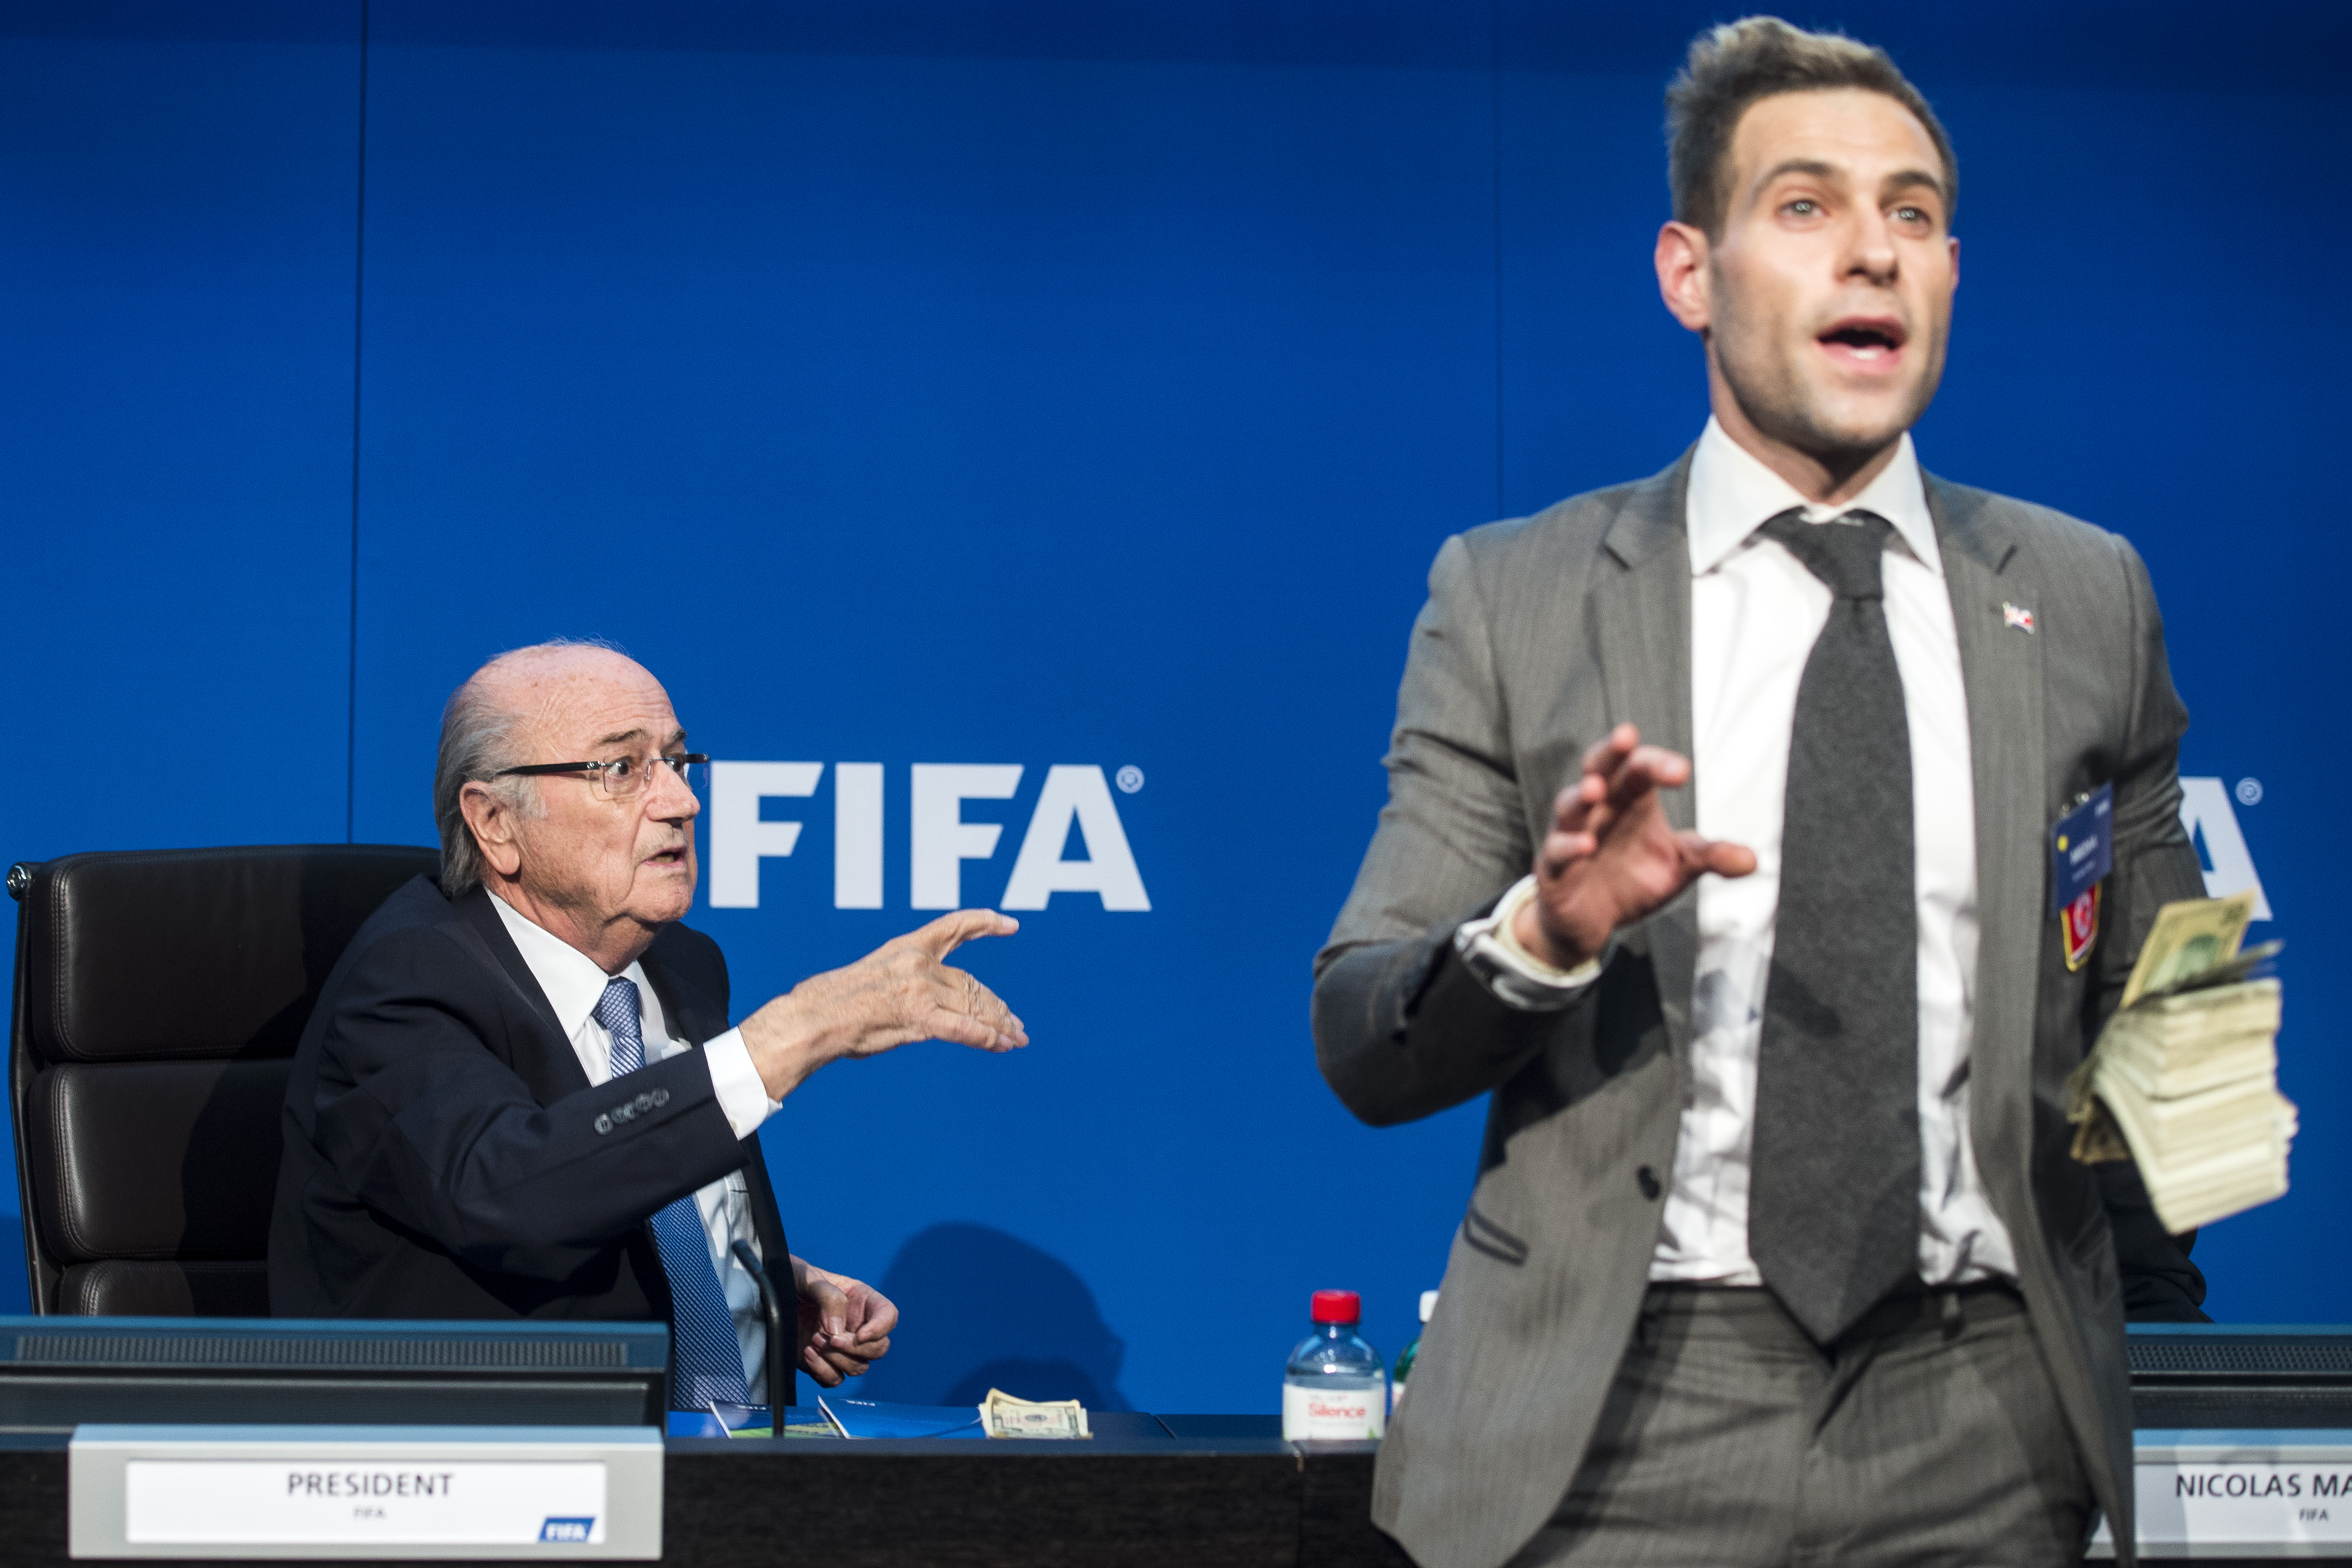 FIFA president Sepp Blatter (left) sitting next to British comedian Simon Brodkin during a press conference at the footballu2019s world governing body headquarters in Zurich on Monday. Photo: AP